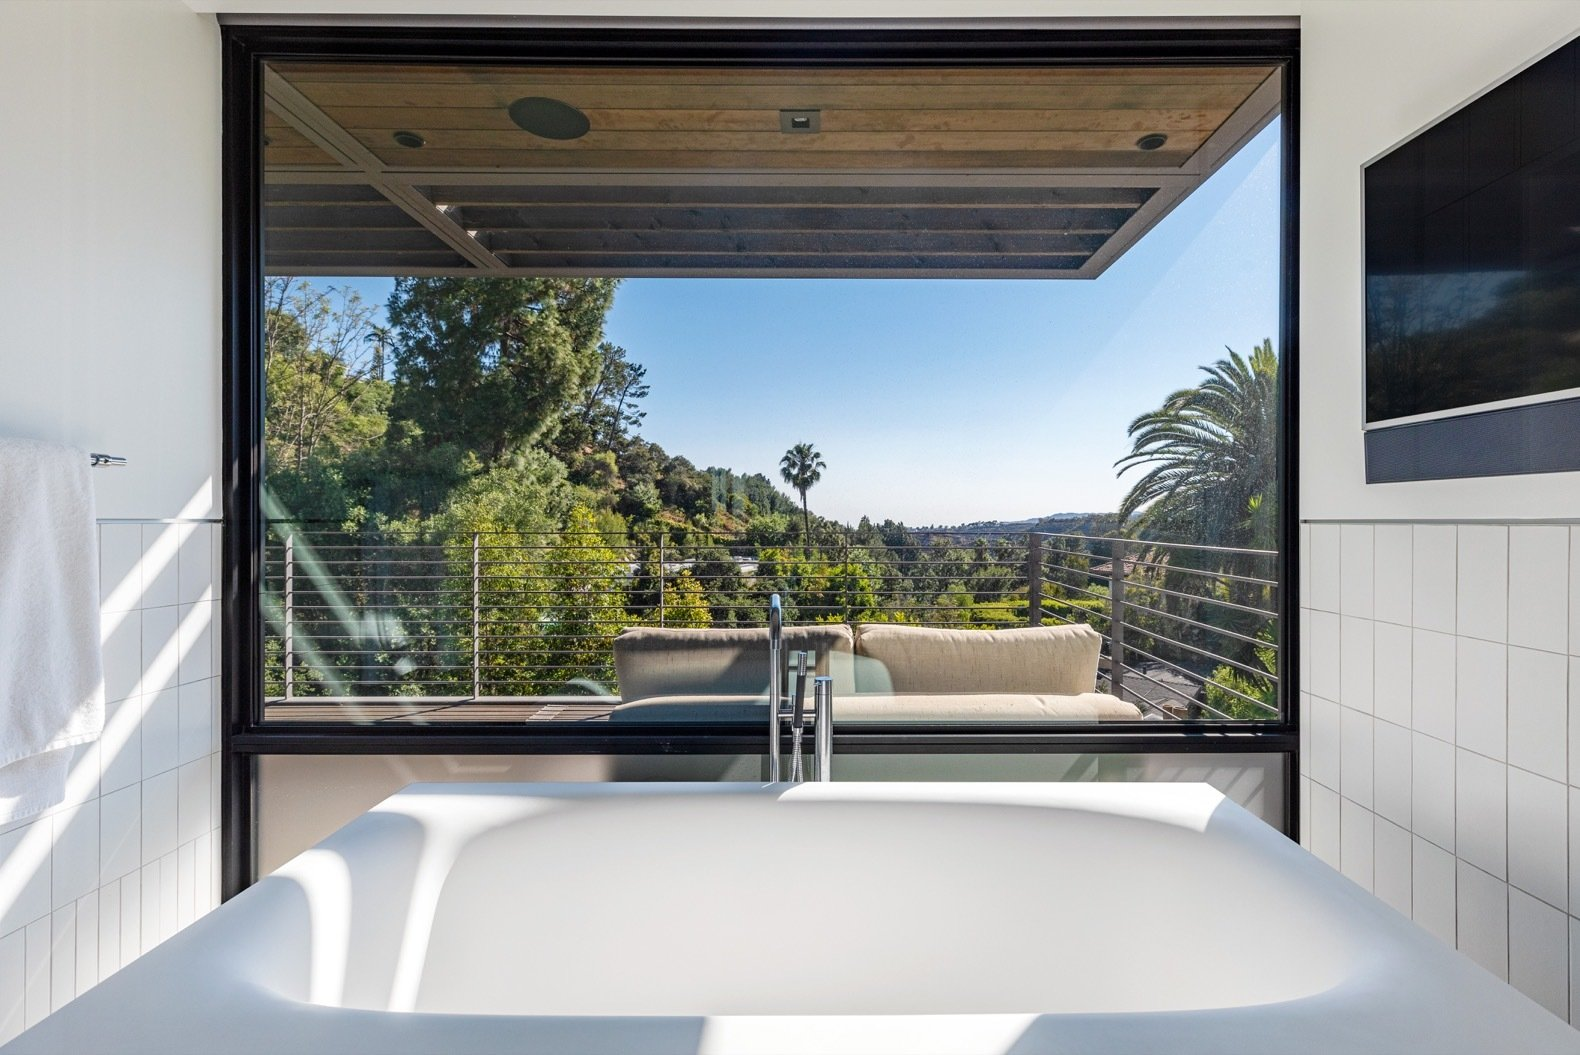 Bath Room and Freestanding Tub A large window framing landscape views elevate the bathing experience in the master bath.   Photo 7 of 15 in Will Arnett Lists His Prefab-Hybrid Home in Beverly Hills for $11M